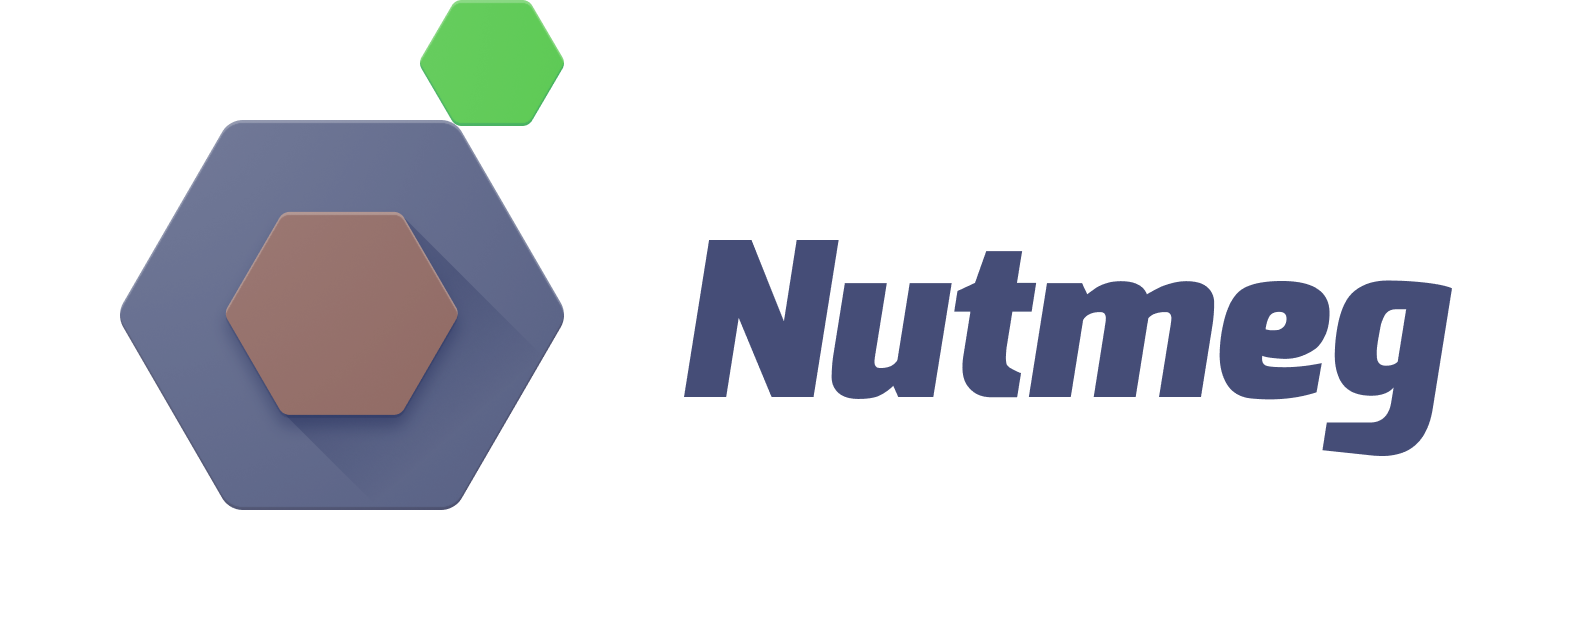 Build a Web Component with Nutmeg - Bendyworks: We Make Web and